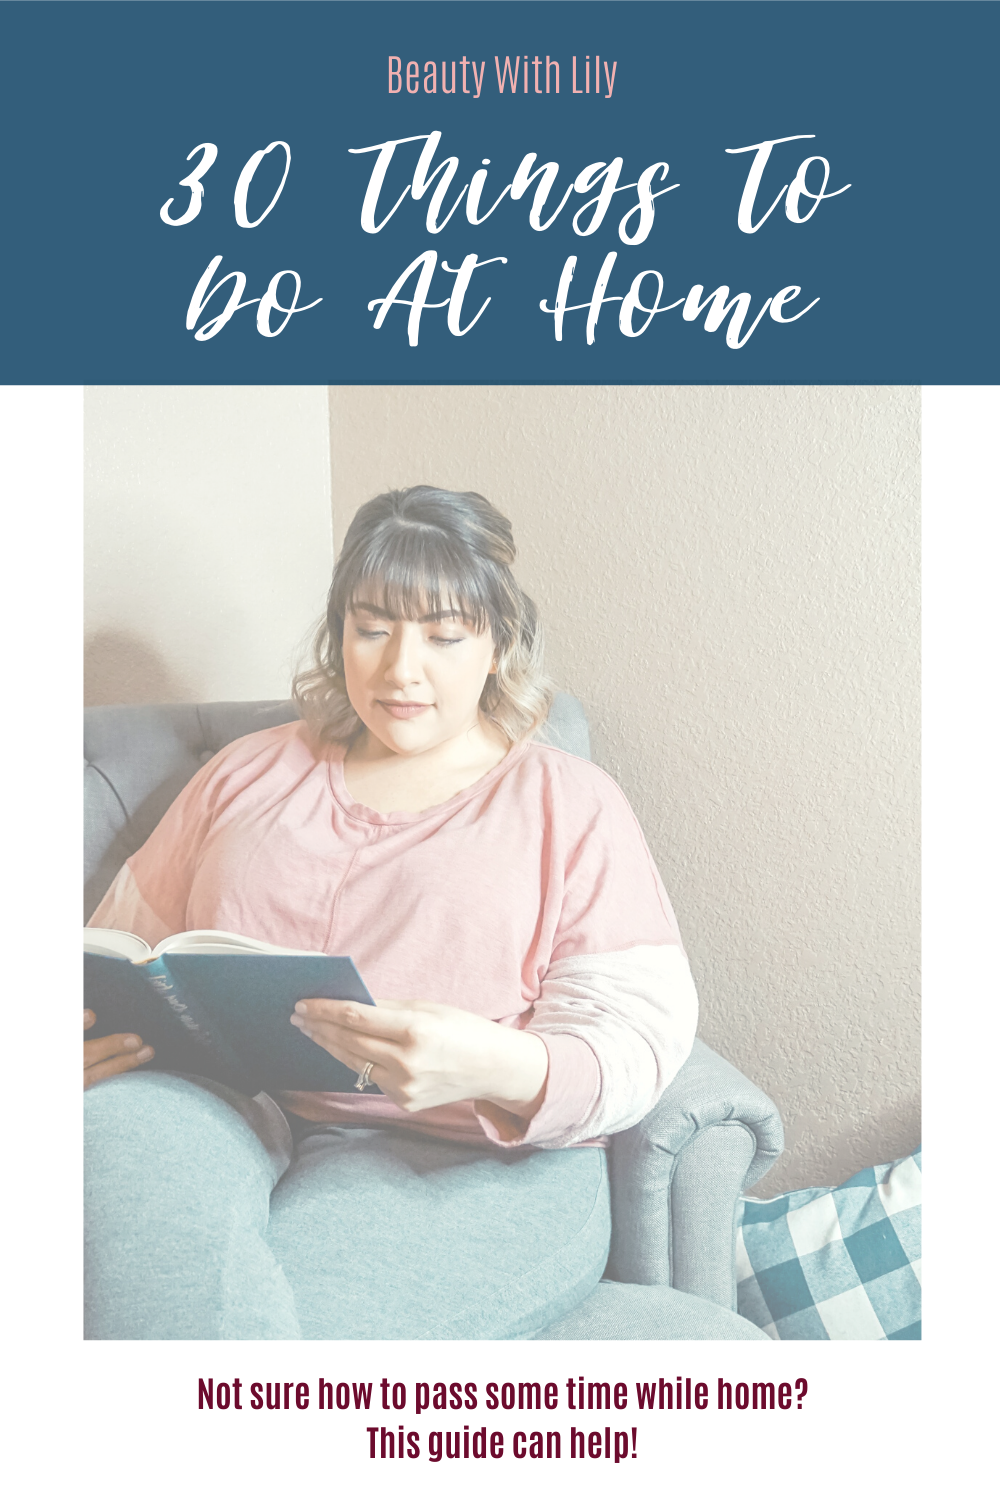 Things To Do At Home // Self-Care Ideas To Do At Home // What To Do When You're Bored // How To Stay Busy // Activities To Do At Home // How To Avoid Being Bored | Beauty With Lily #selfcare